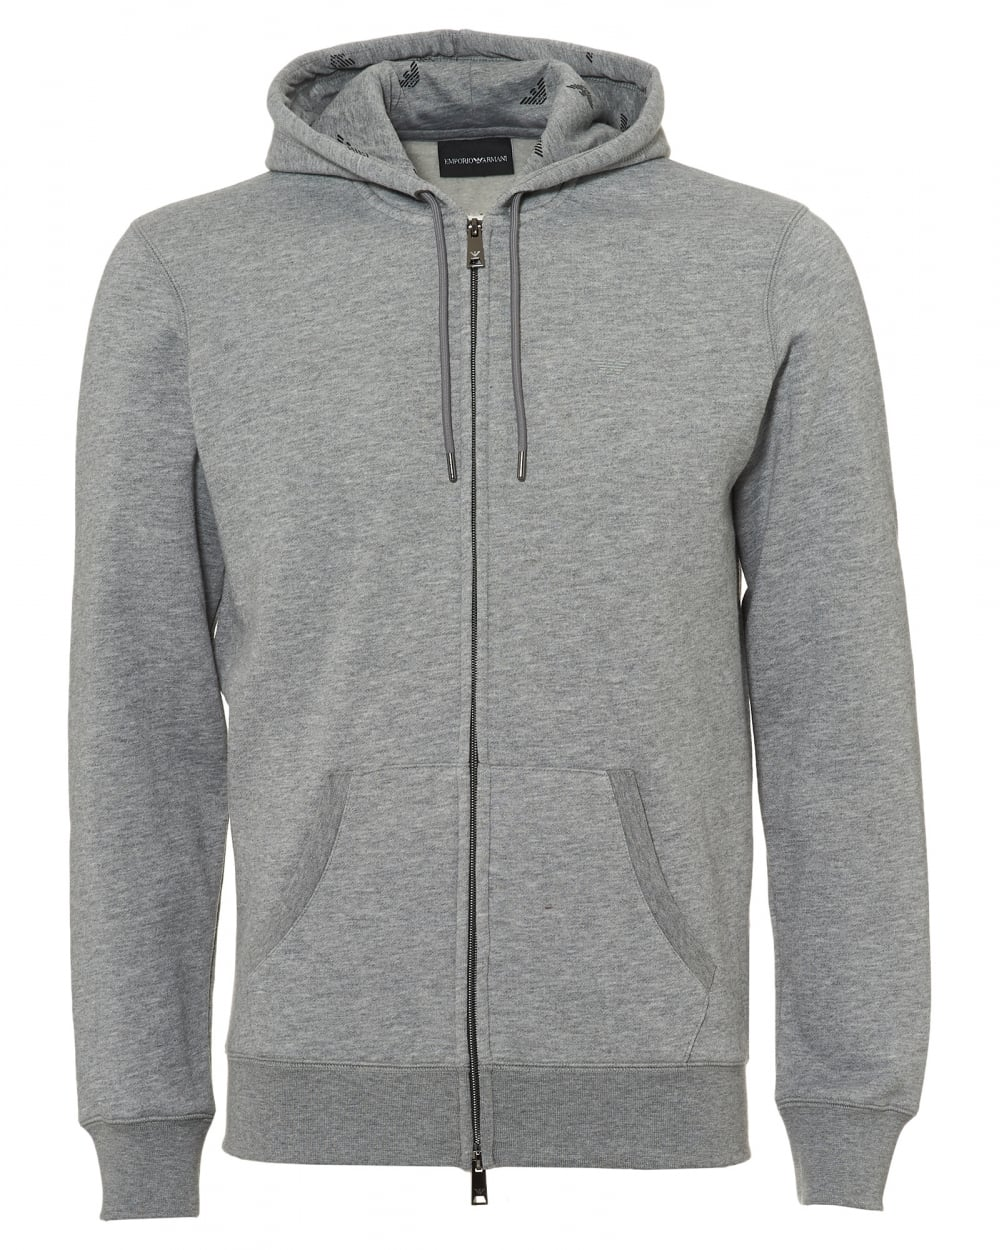 ba7c13239 Emporio Armani Mens Logo Hoodie, Regular Fit Grey Hooded ...